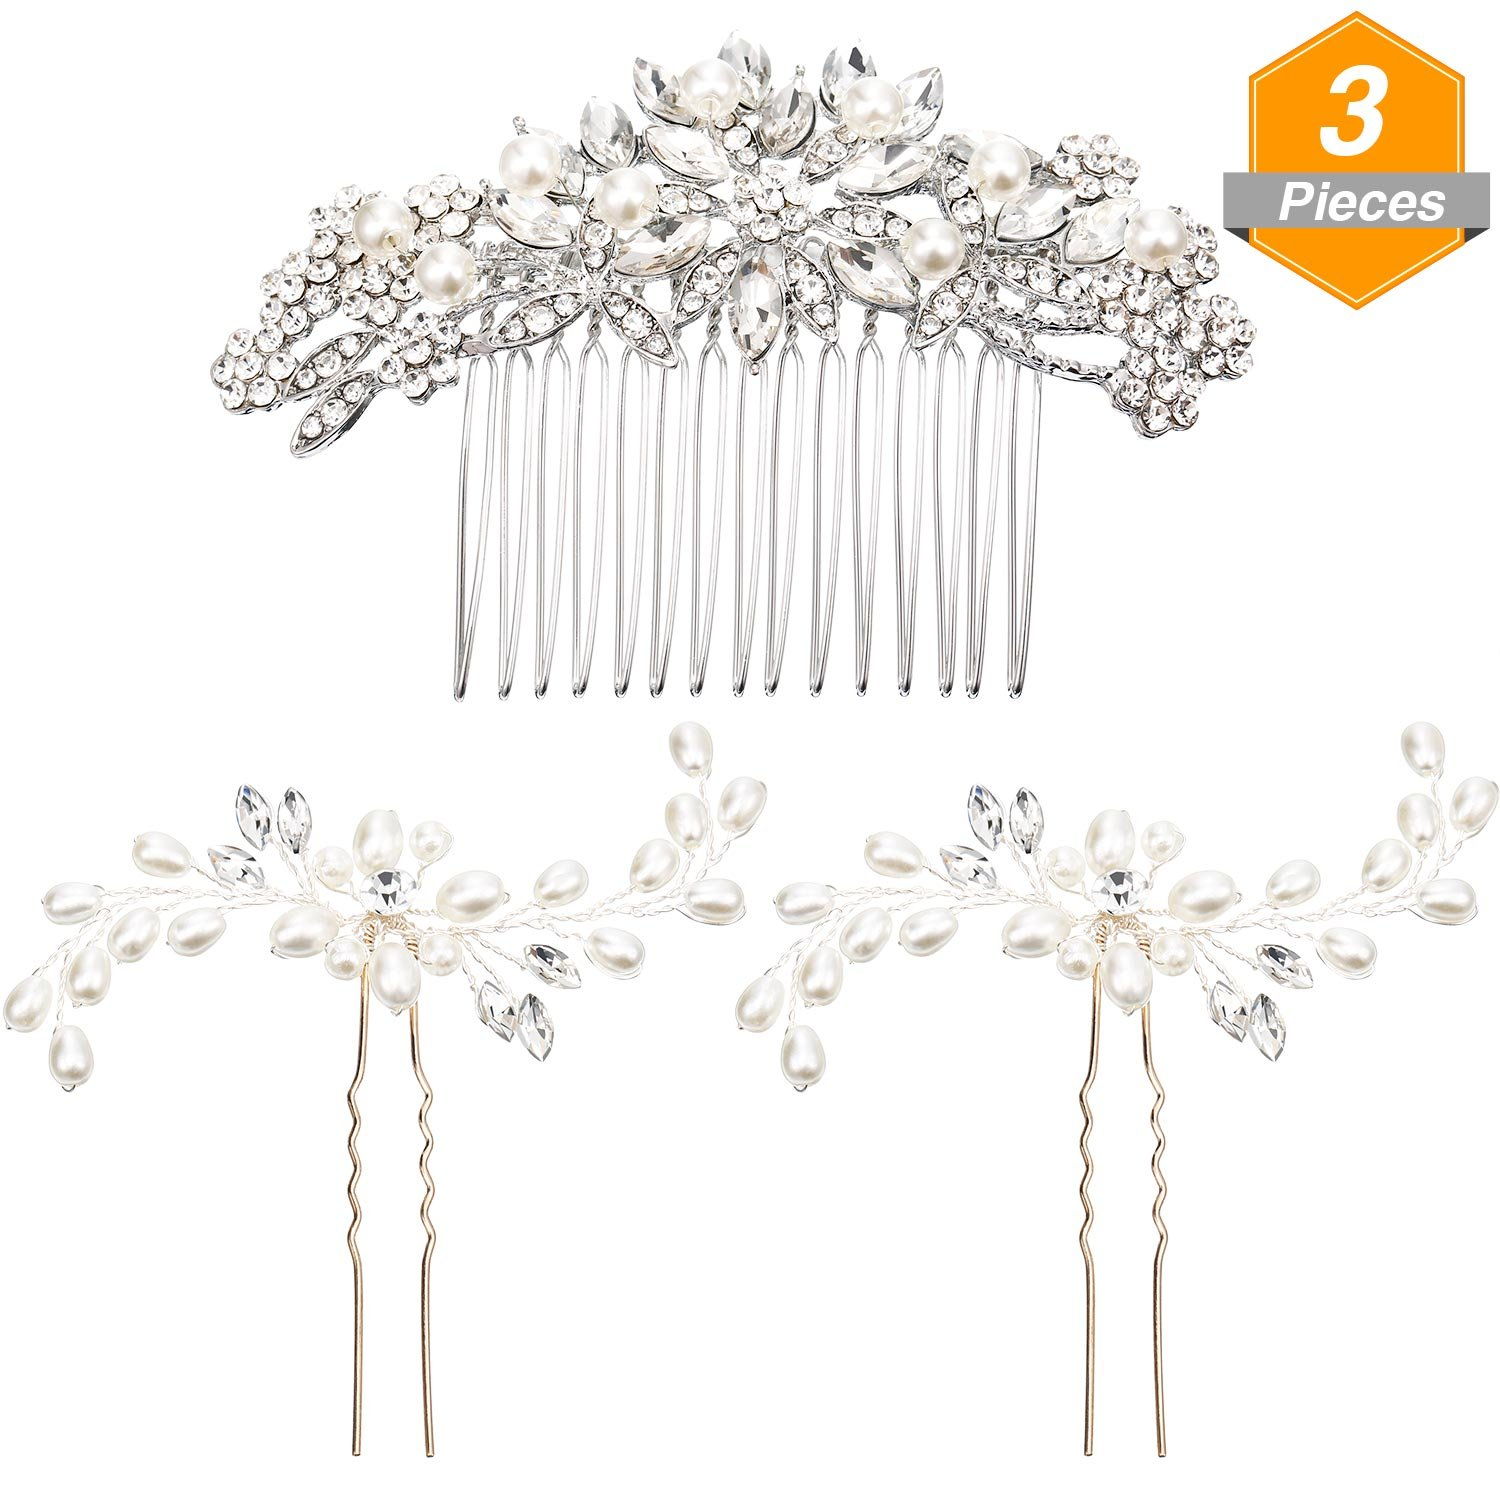 Gejoy 3 Pieces Elegant Wedding Crystal Hair Accessories, Leaves Flowers Hair Comb and 2 Pieces Rhinestone Bridal Hair Pins for Women, Bride or Bridesmaid